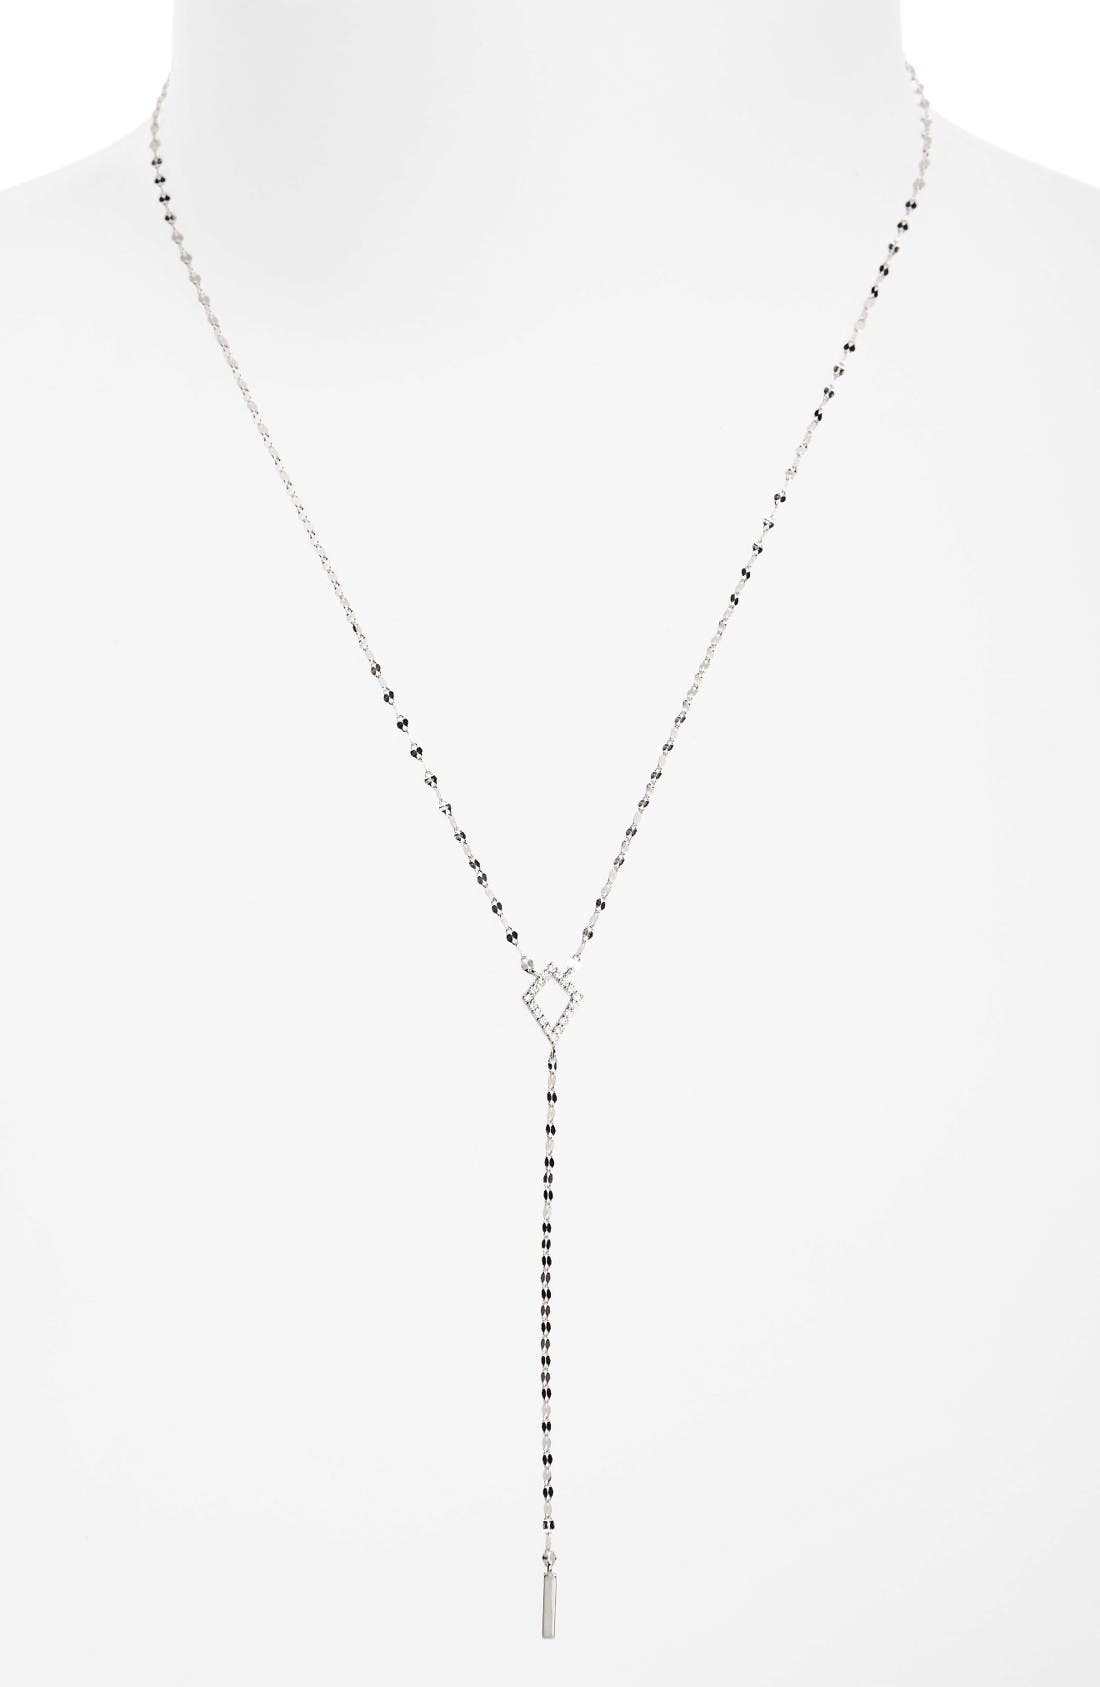 Flawless Diamond Kite Y-Necklace,                             Main thumbnail 1, color,                             711